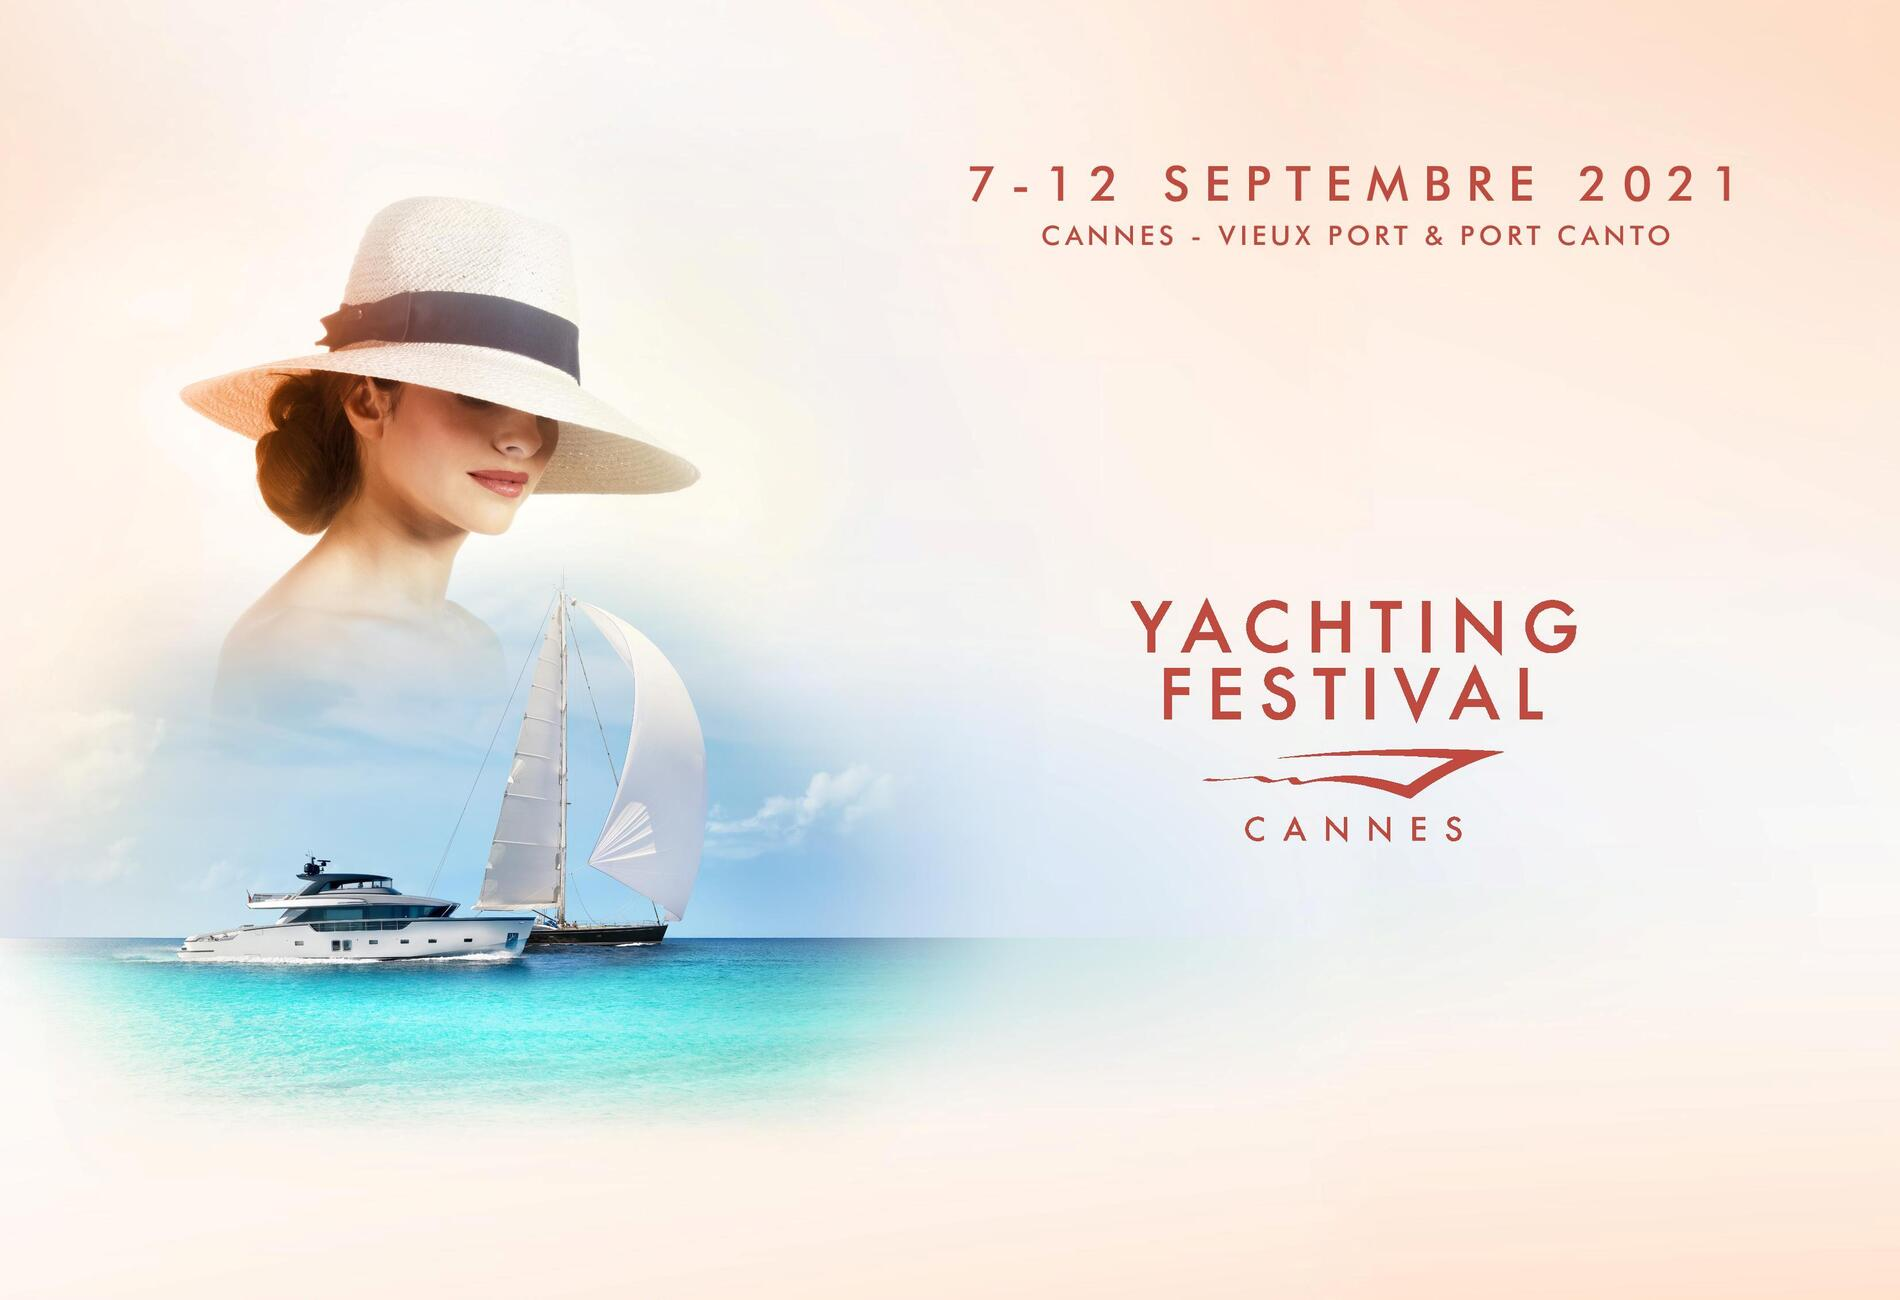 Yachting Festival Cannes 2021-architecte naval Vincent LEBAILLY